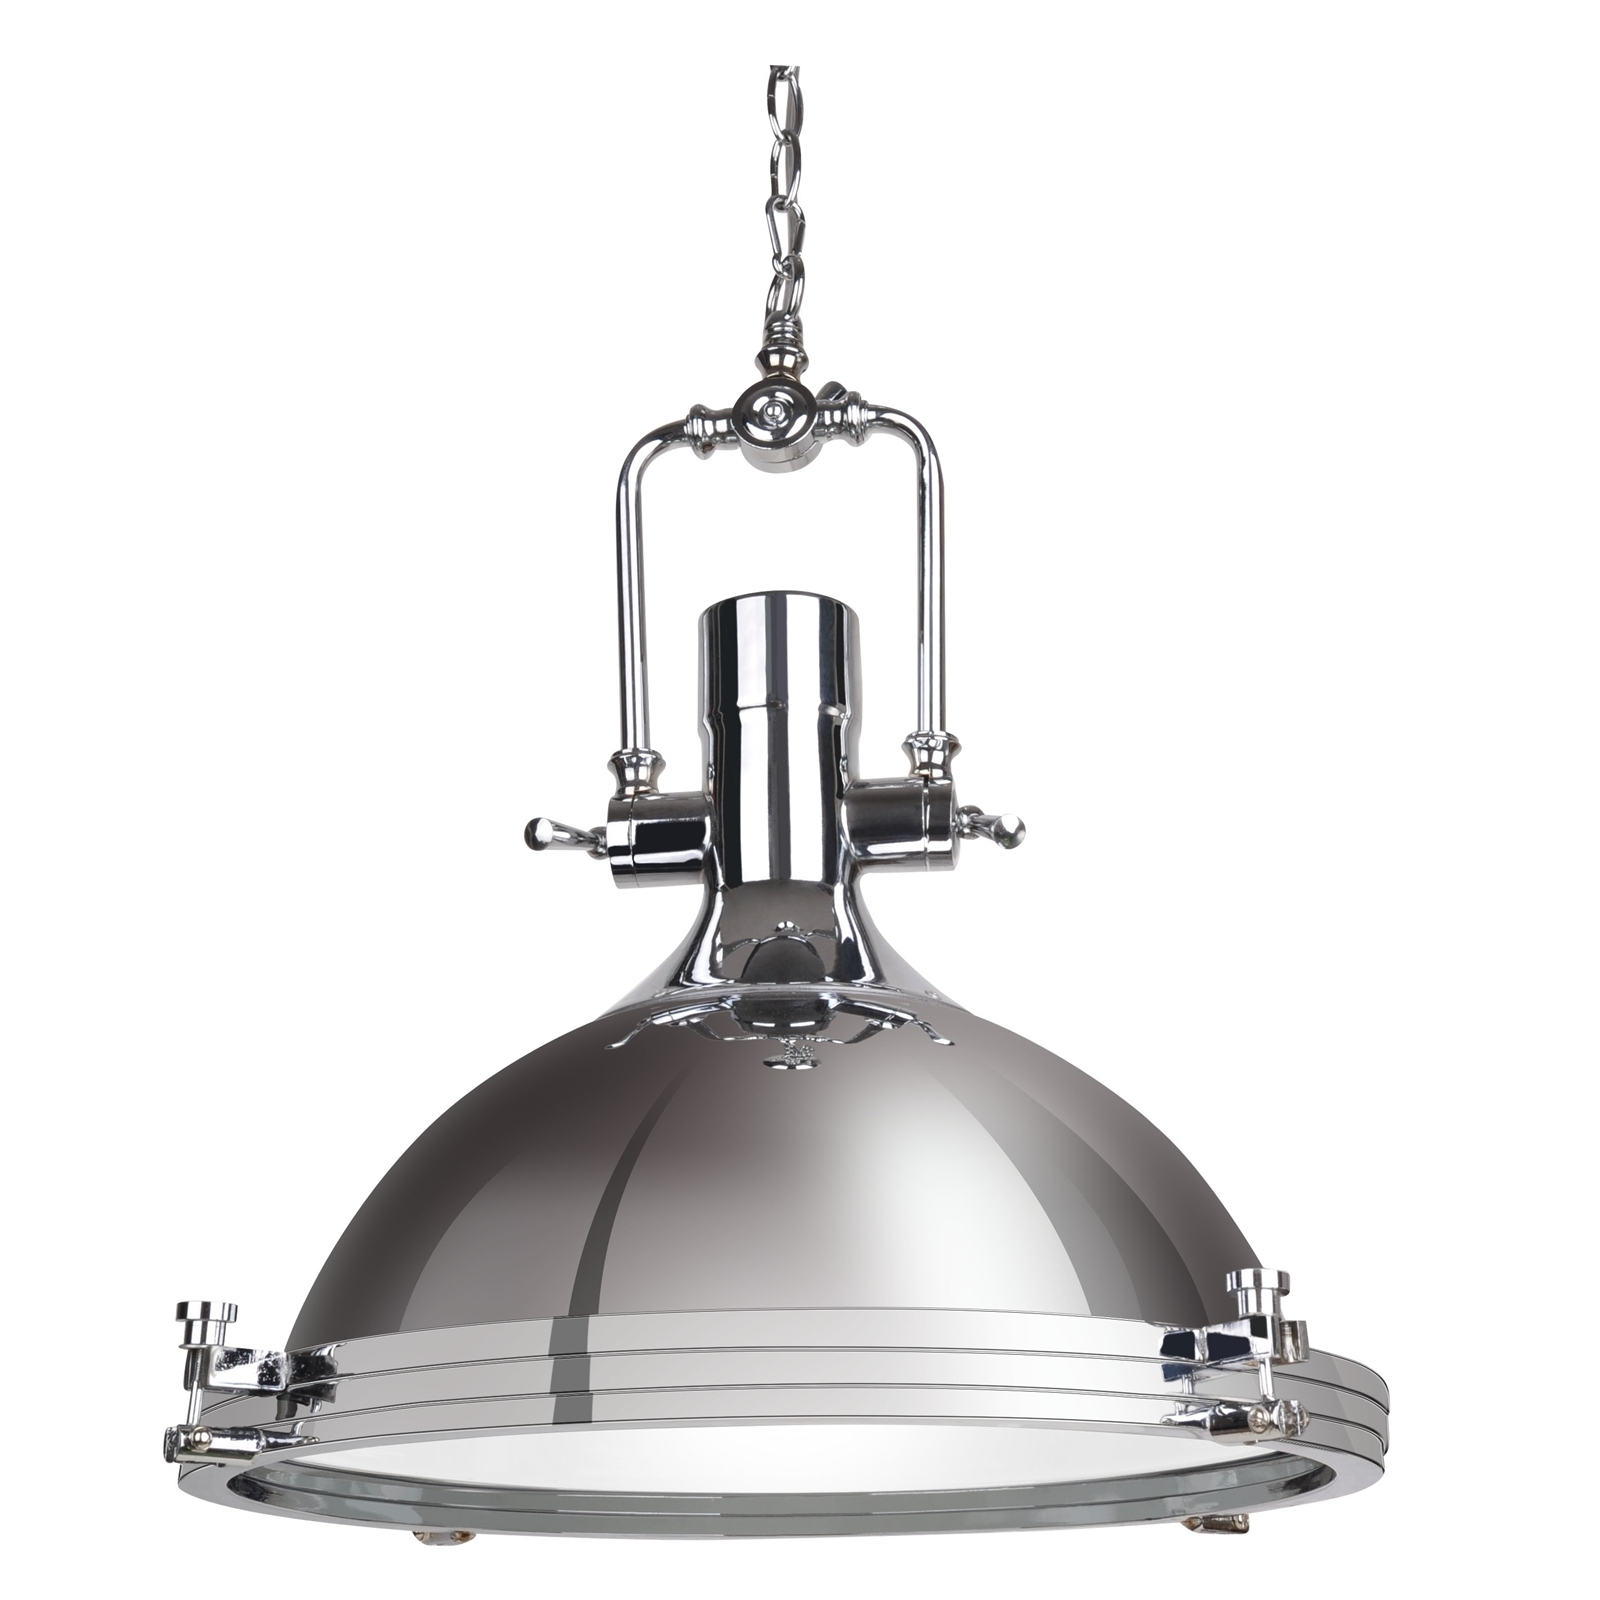 Find Cafe Lighting 40Cm 240V Turner Pendant Light – Chrome At Regarding Most Recently Released Outdoor Ceiling Lights At Bunnings (View 2 of 20)